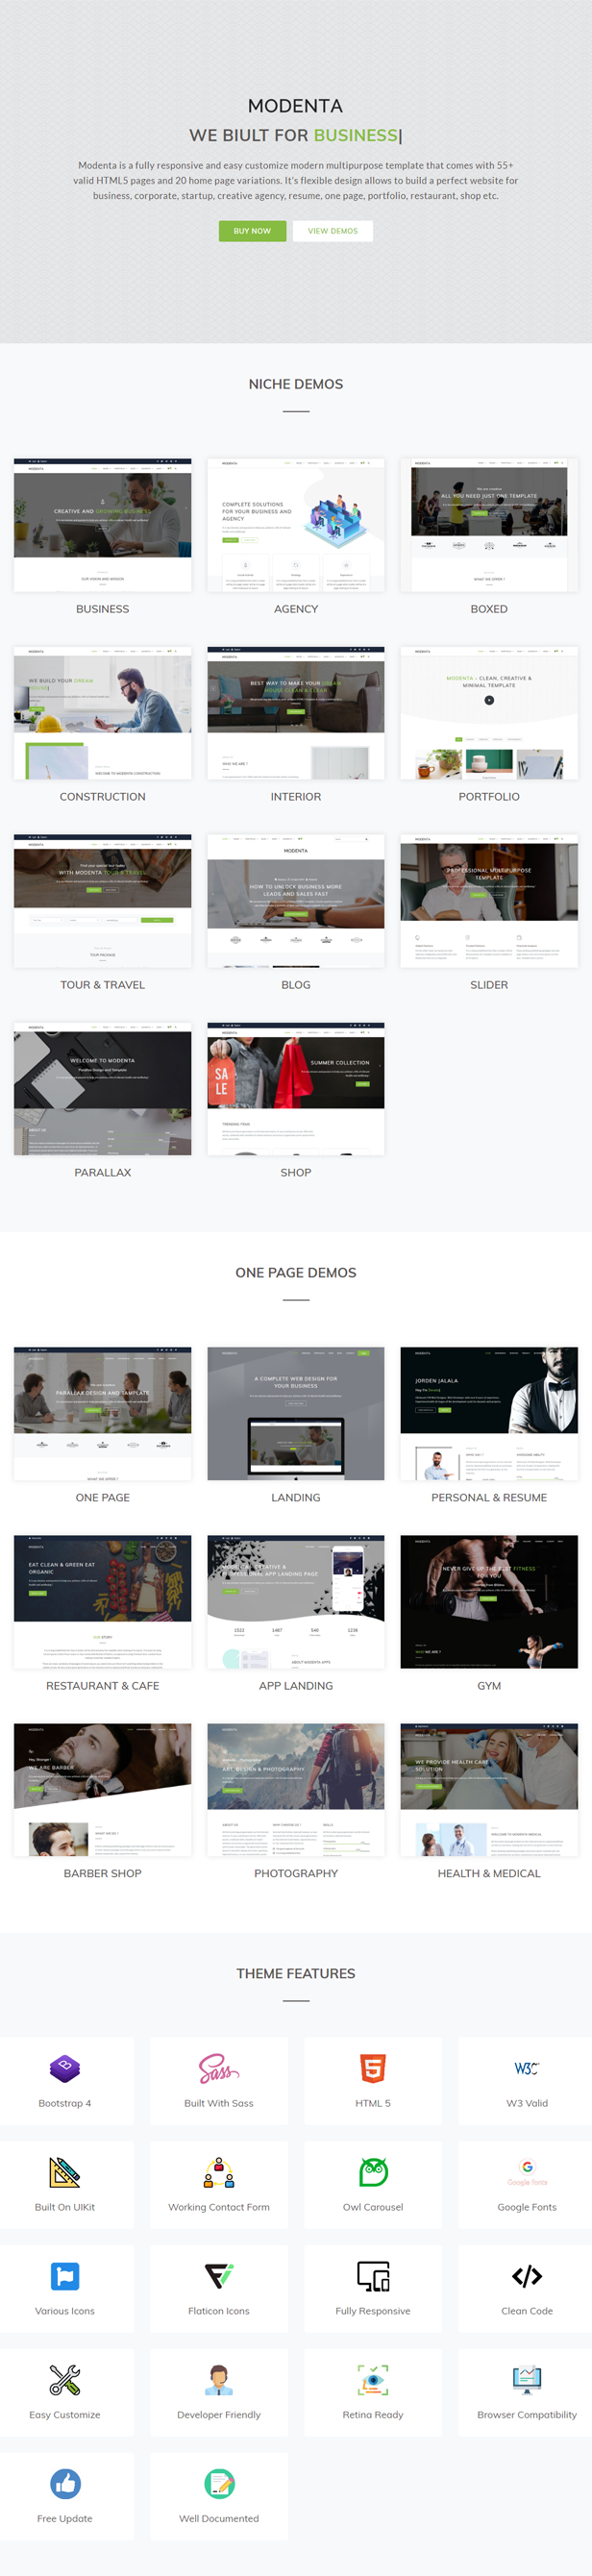 Modenta - A Responsive Multipurpose Template - 1